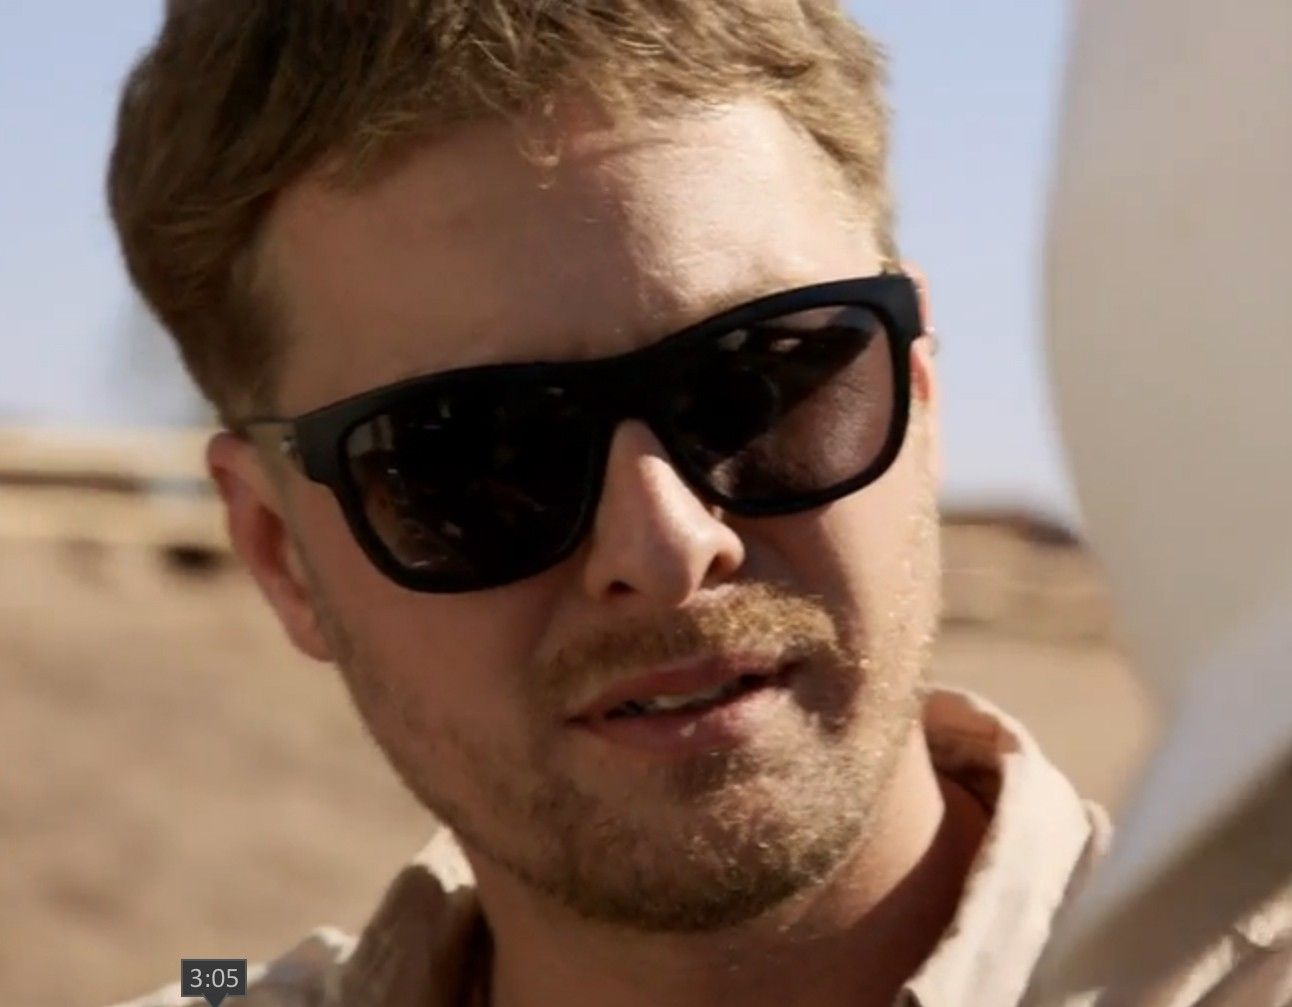 Does anyone know which sunglasses these are? - sunn.jpg